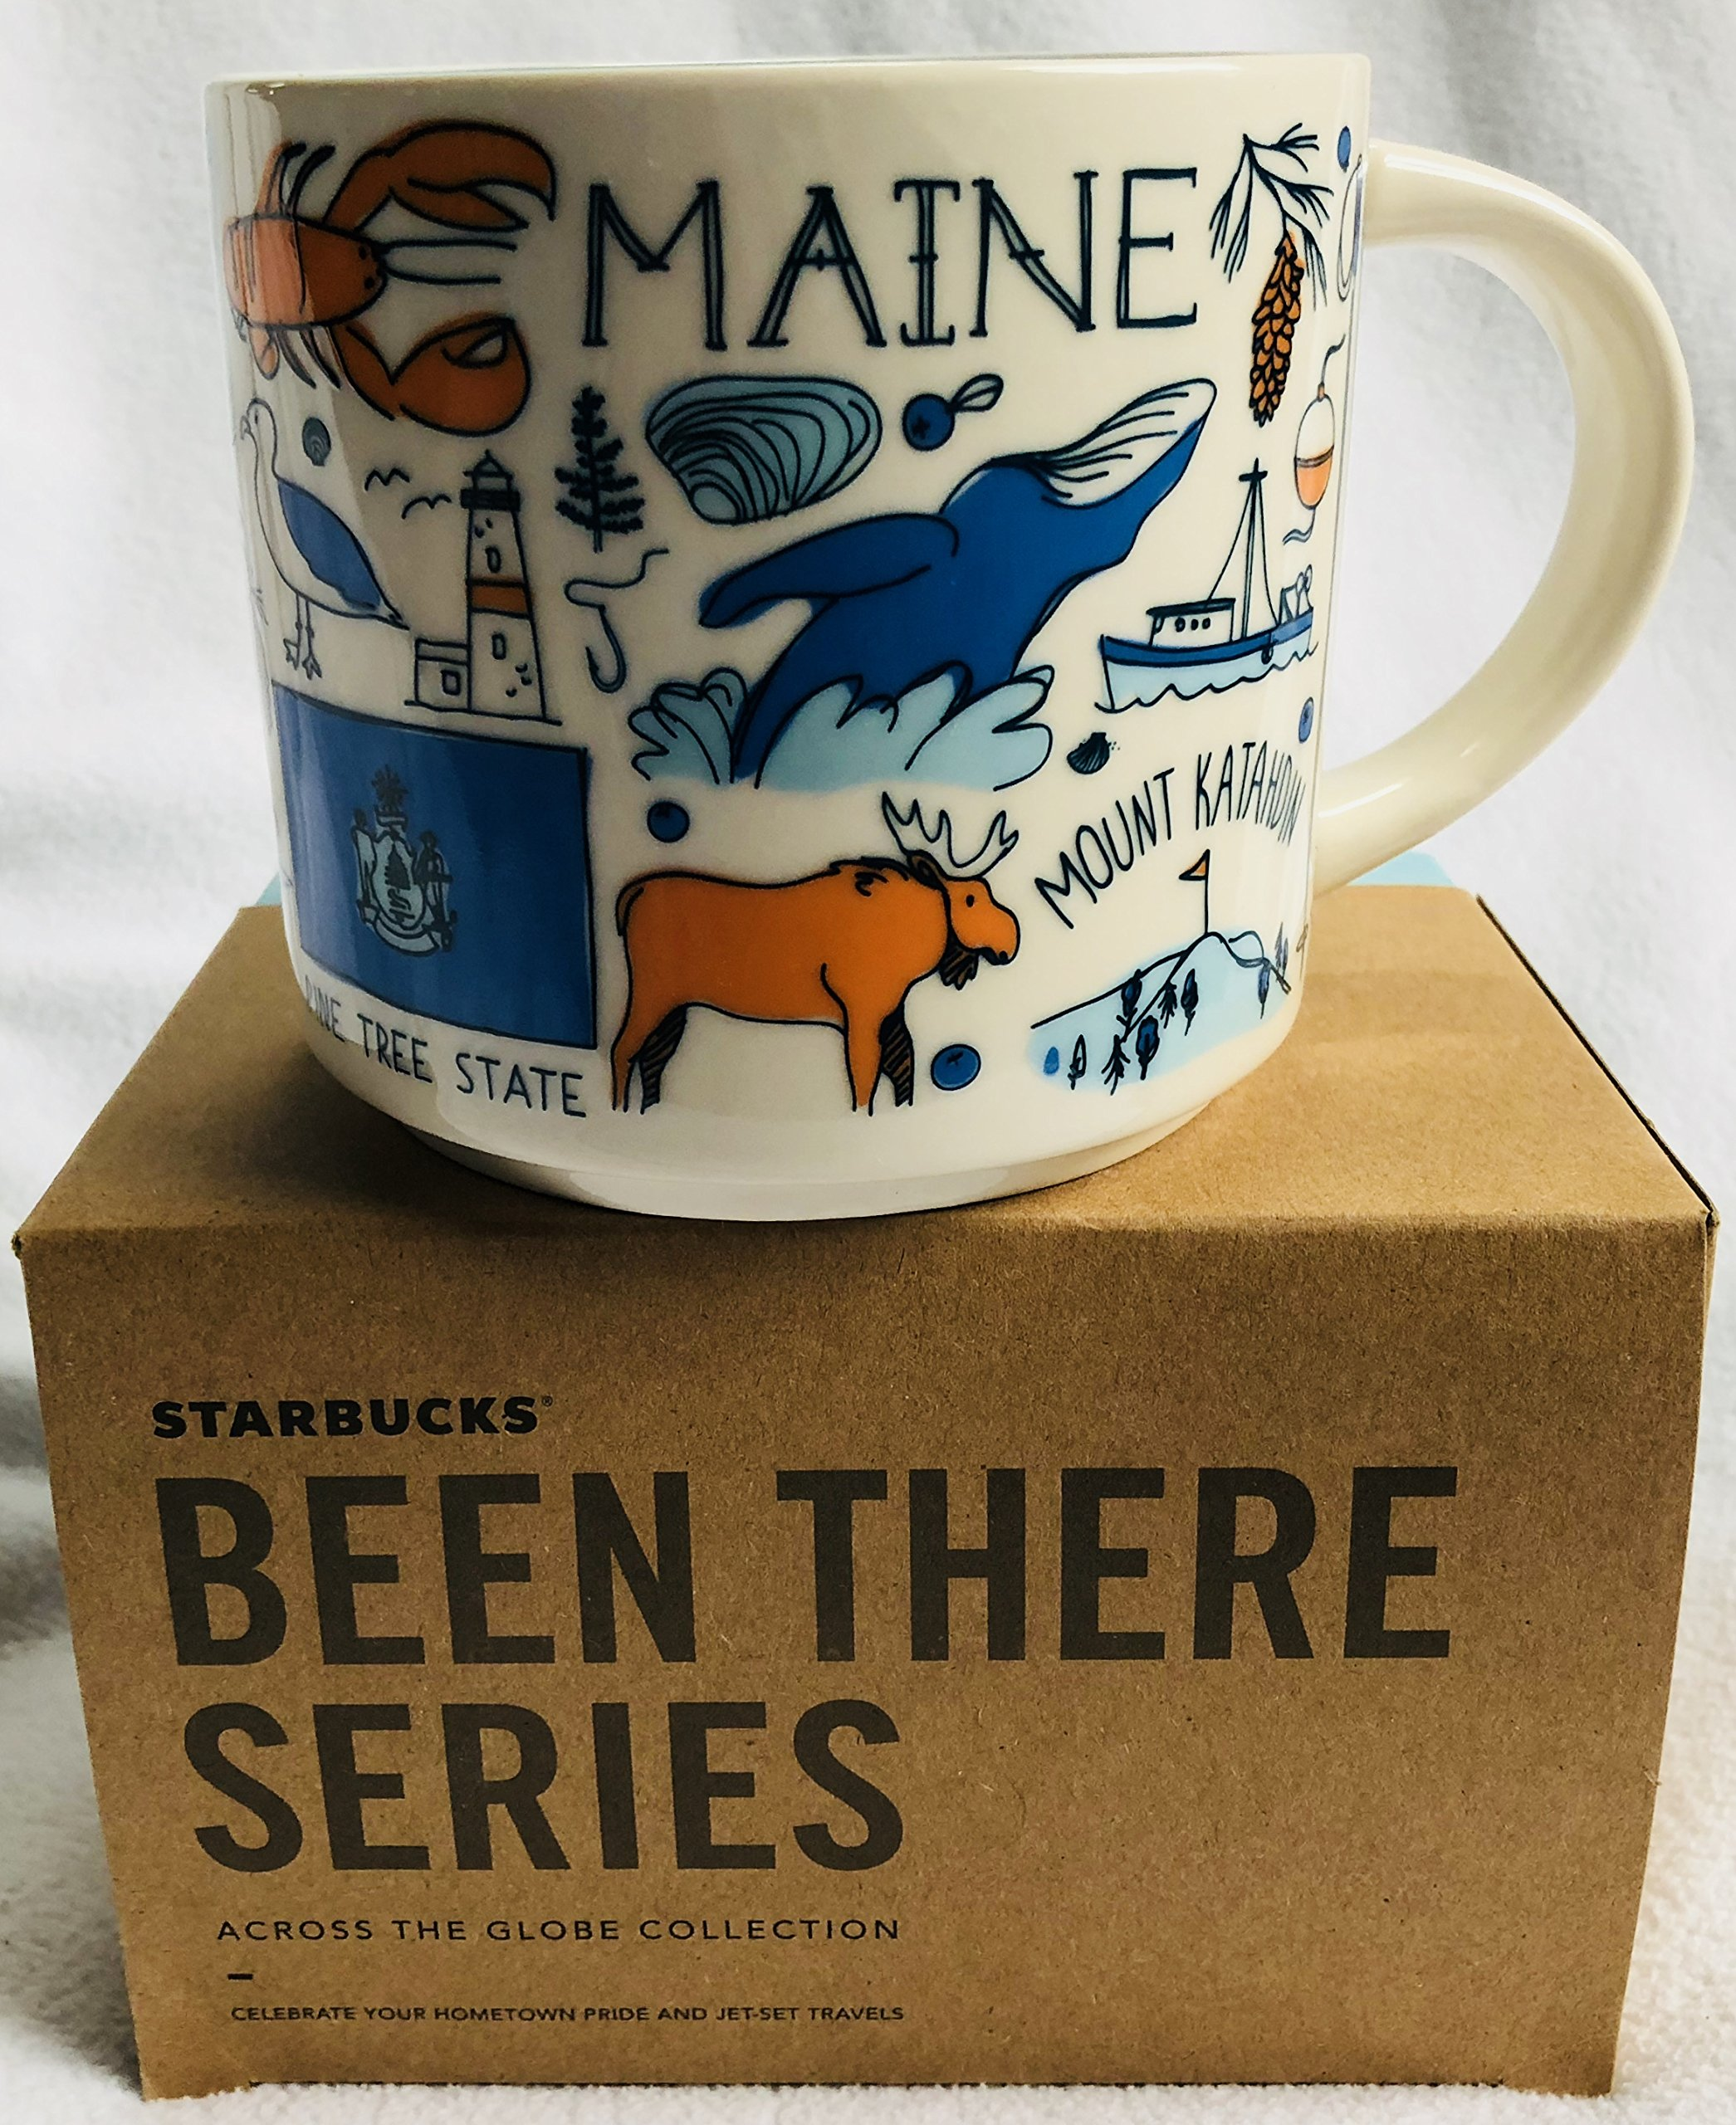 Starbucks Maine Coffee Mug Been There Series Across the Globe Collection